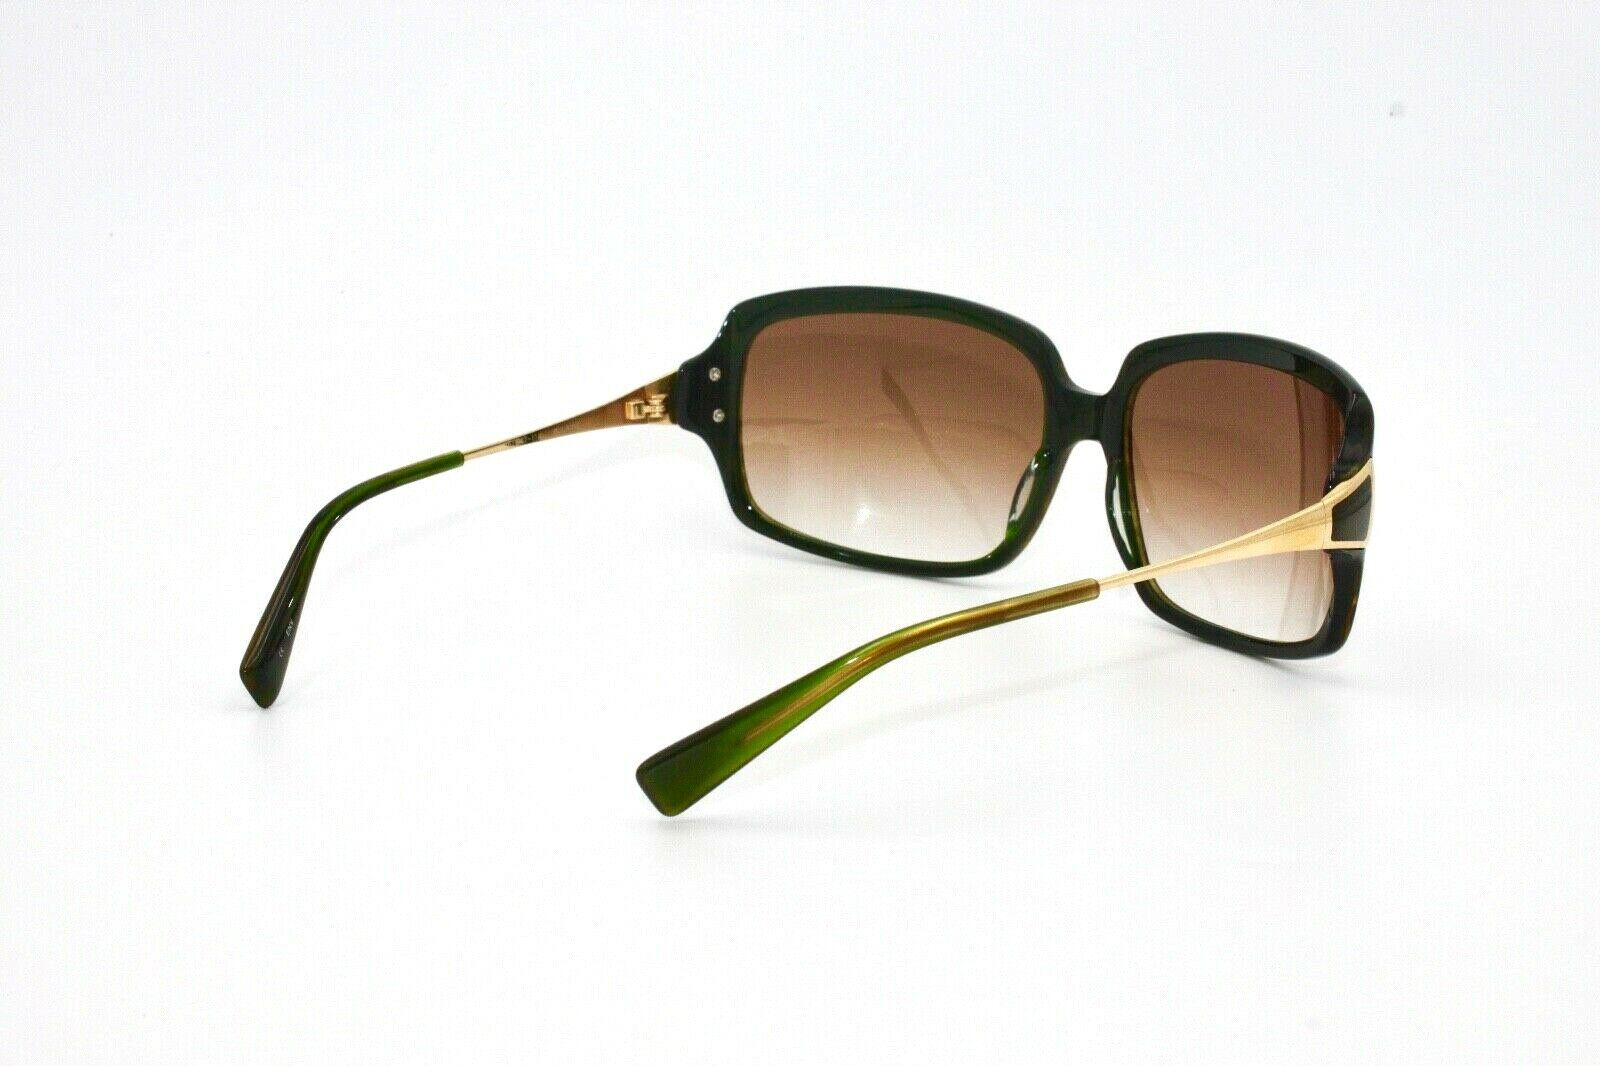 Oliver Peoples Sunglasses Dulaine 61 17 114 Made in Japan - Mydesigneroptic